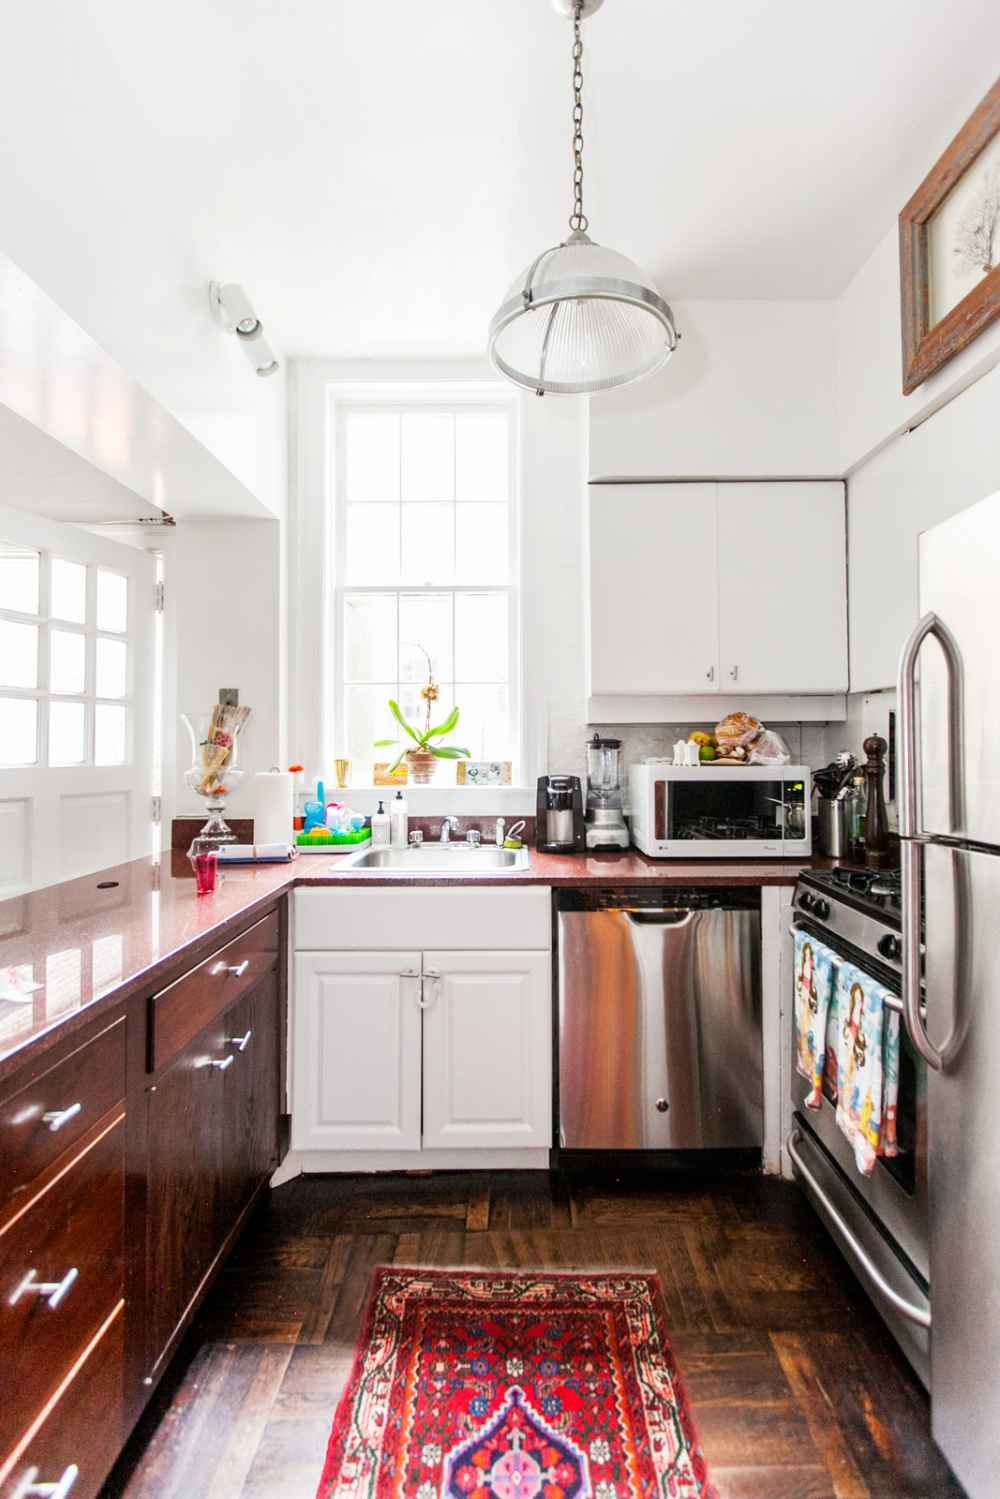 This NYC Apartment Will Inspire Your Own Home | Einrichtung ...